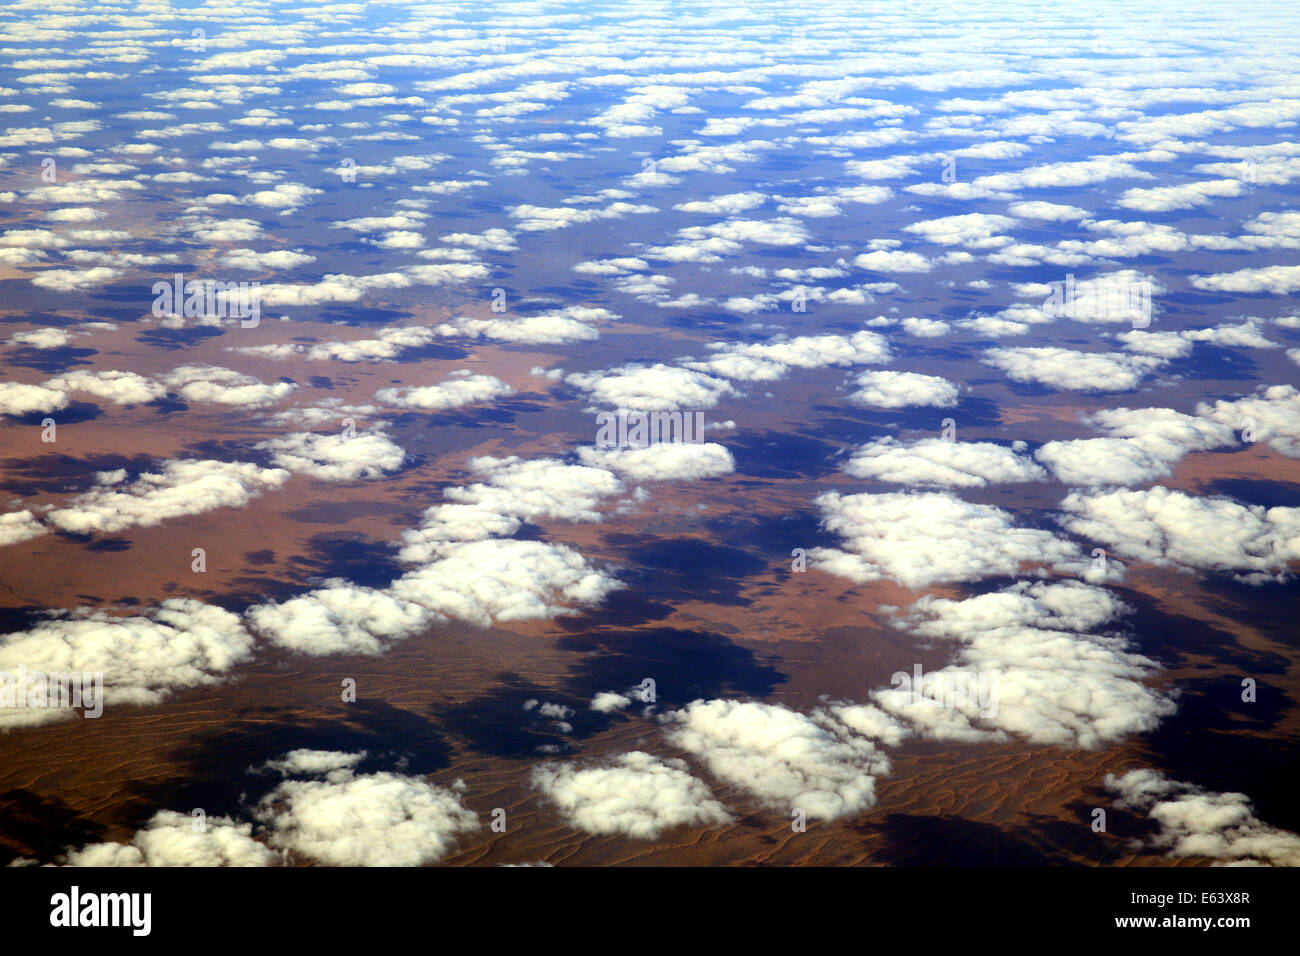 Clouds floating across outback Australia - Stock Image